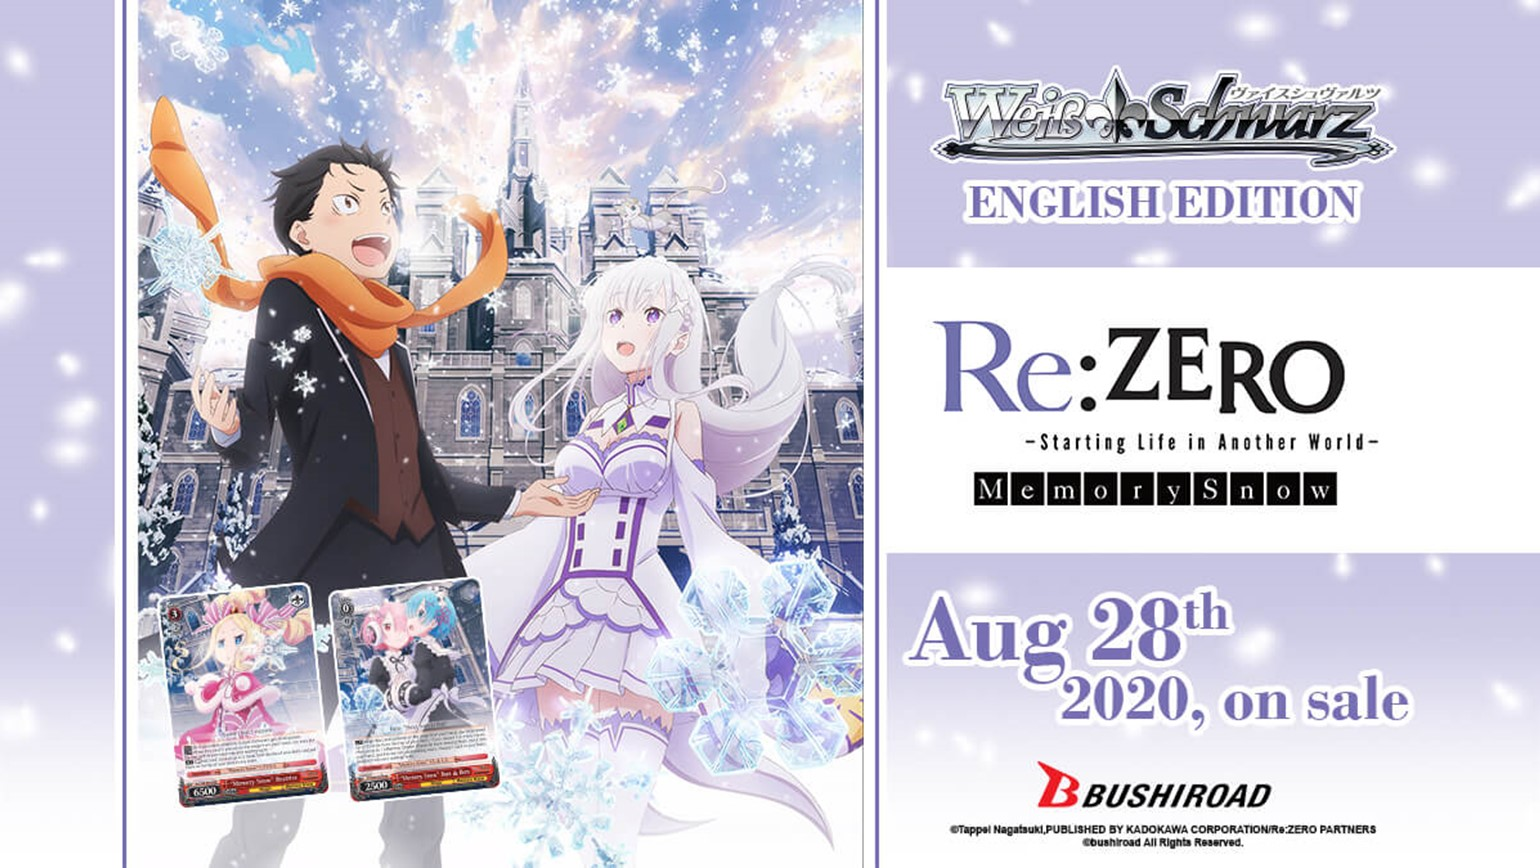 Weiss Schwarz: Booster Pack Re:ZERO -Starting Life in Another World- Memory Snow On Sale August 28th!